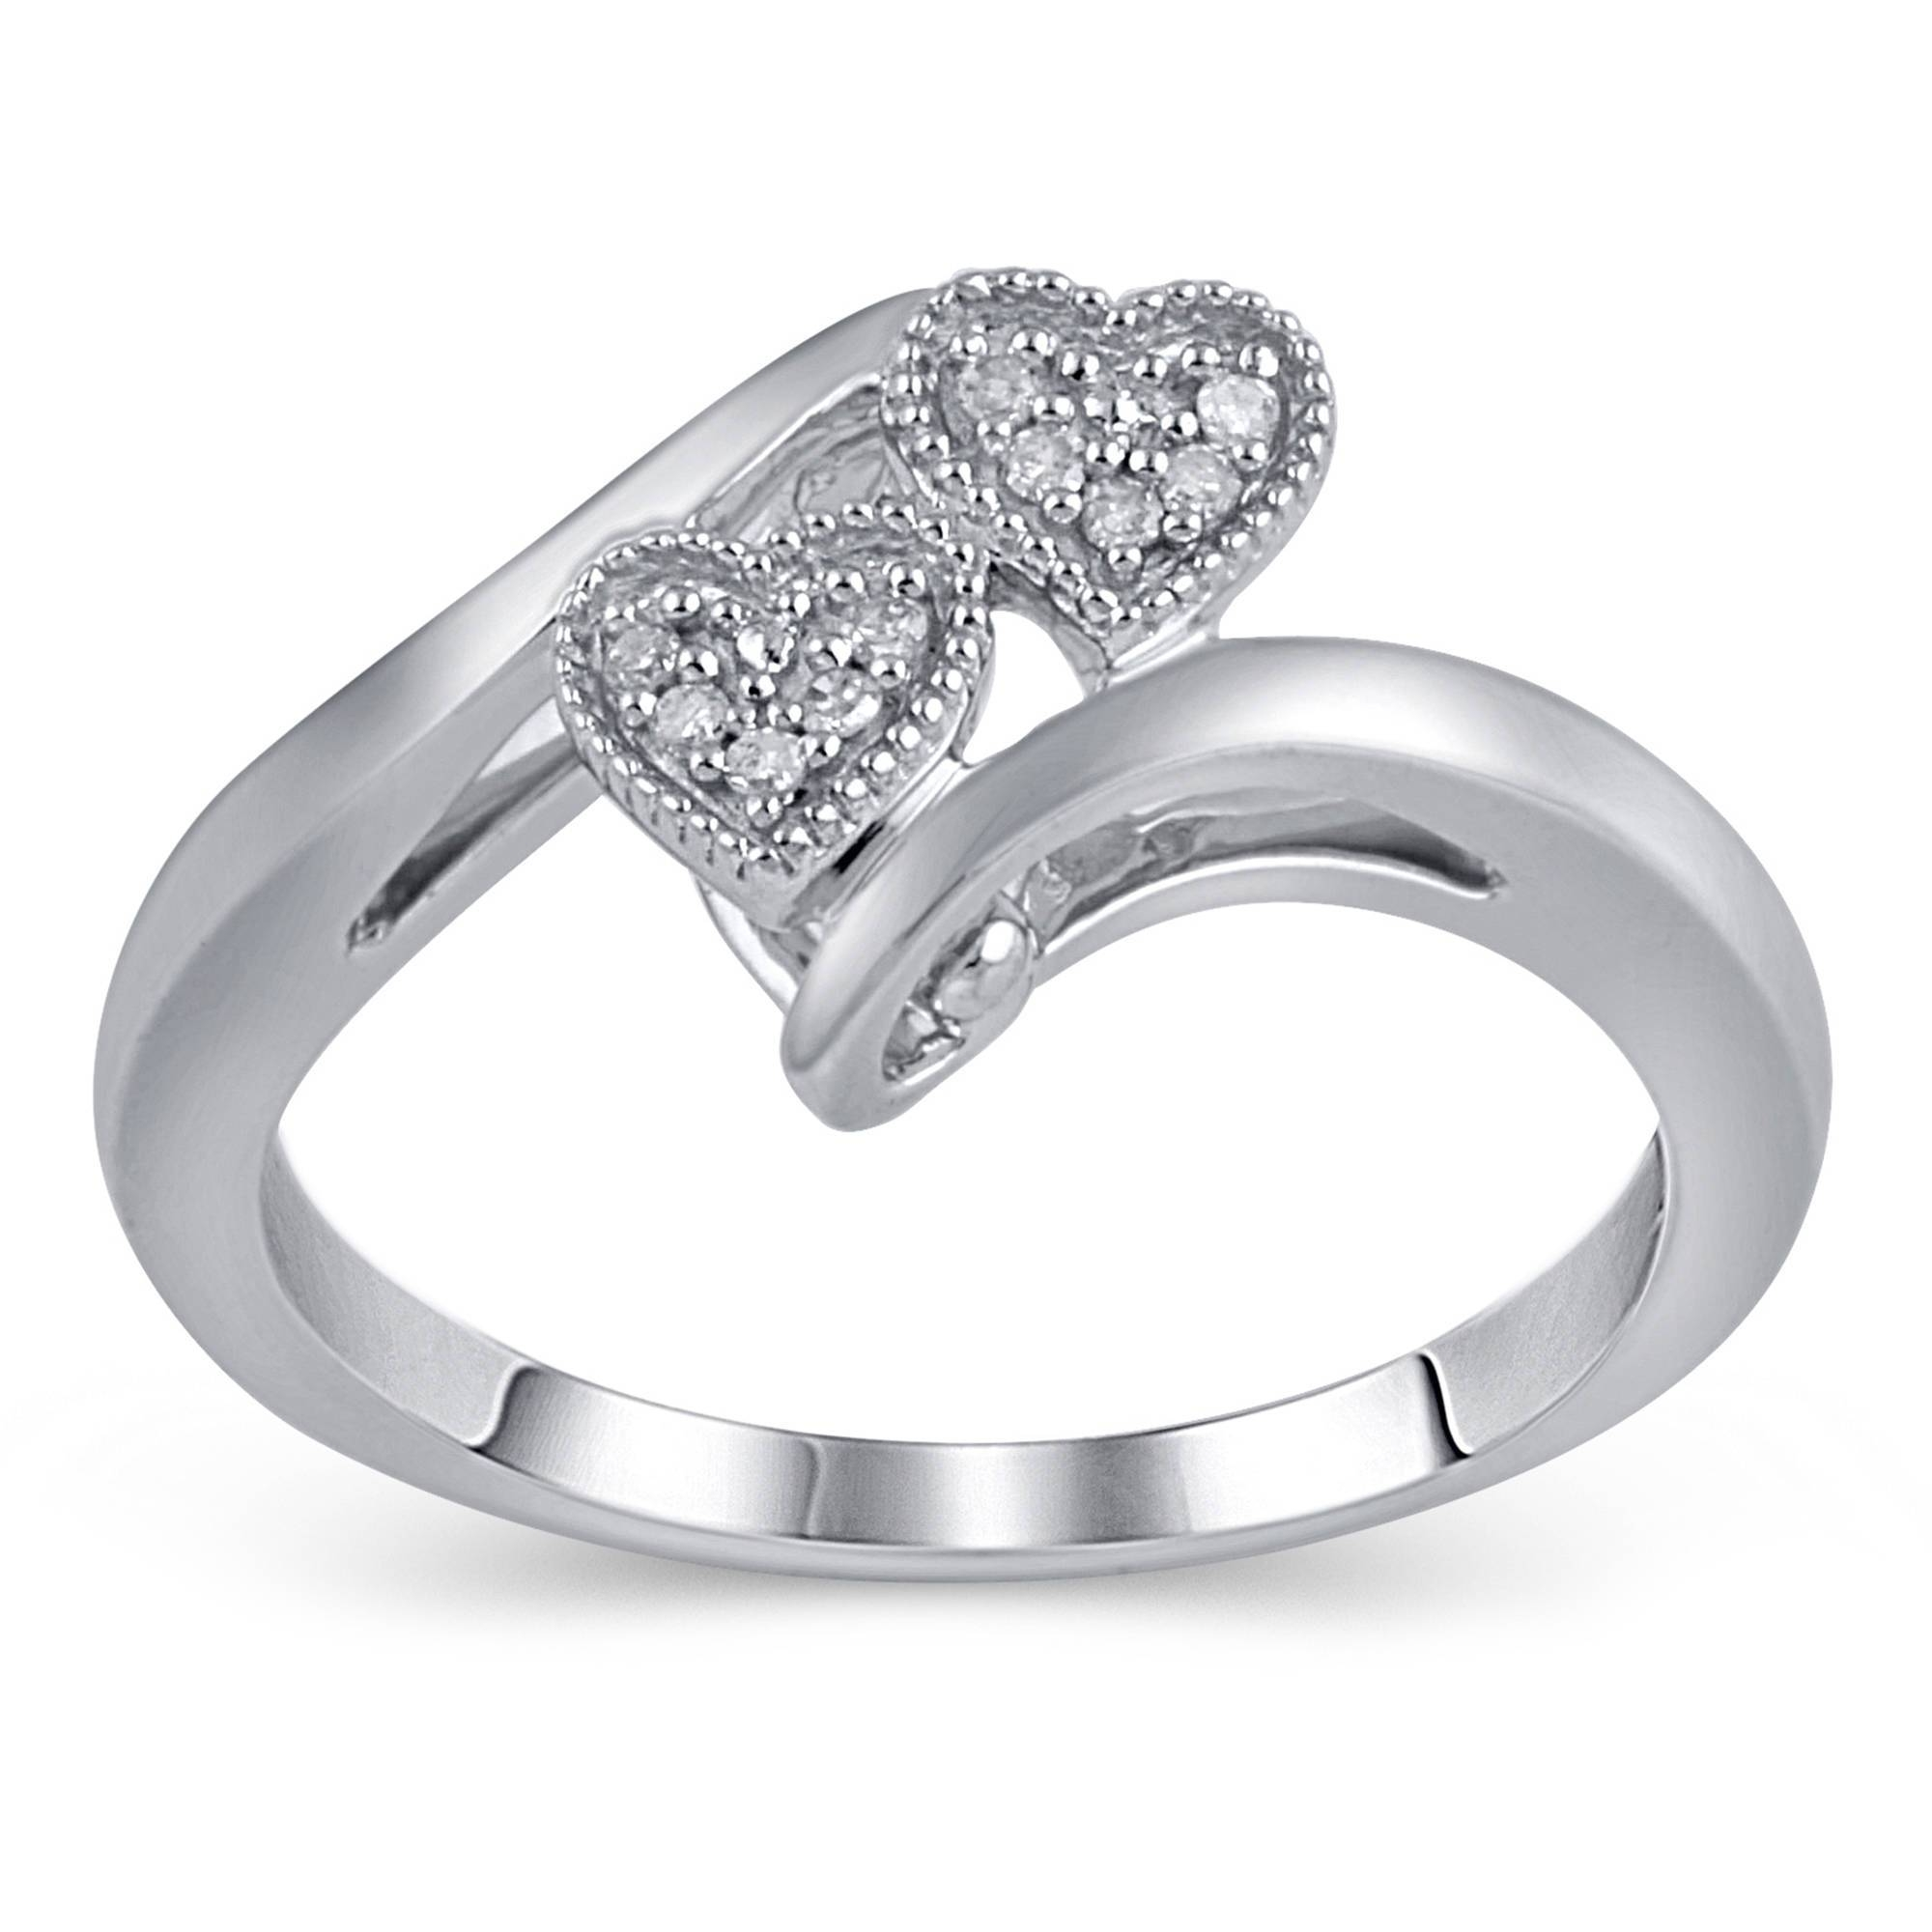 Promise Rings – Walmart Within Walmart White Gold Engagement Rings (View 11 of 15)